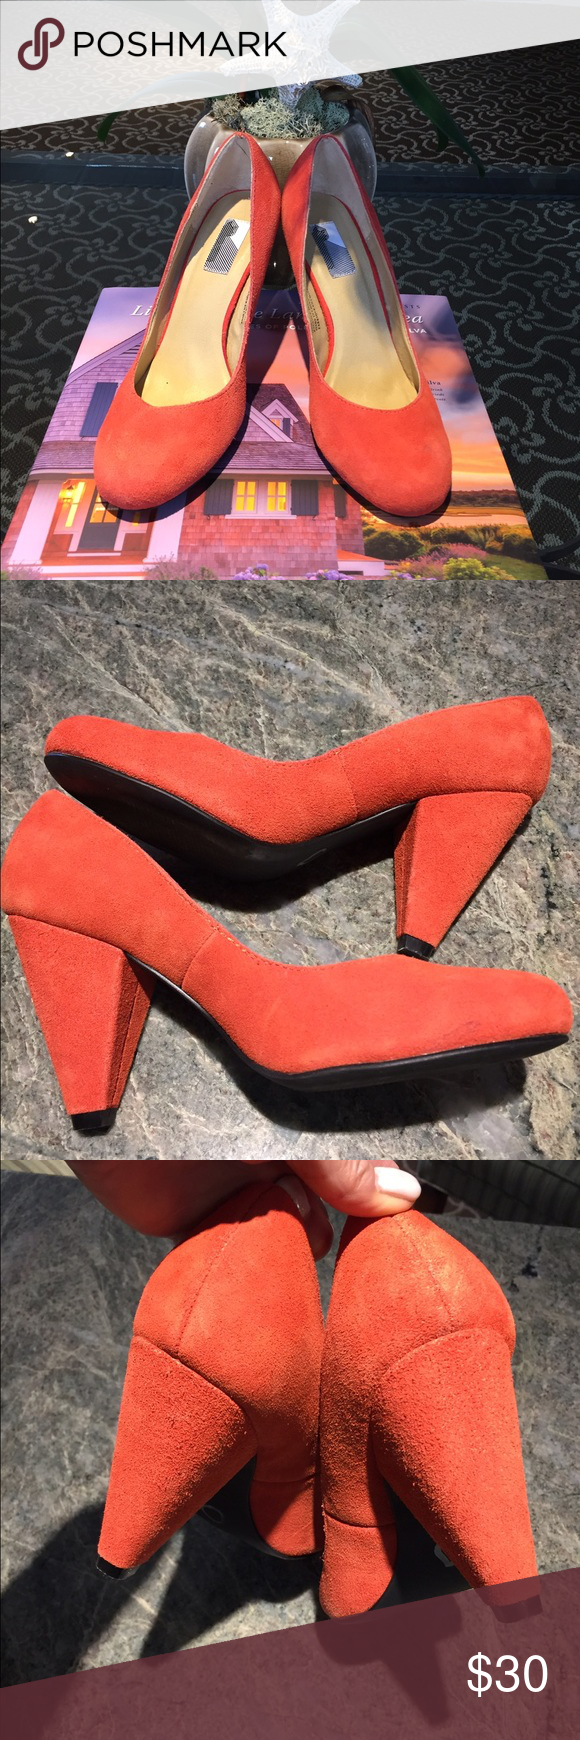 Urban Outfitters Tangerine Pin up Girl Heels Never worn outside worn a few times around the house beautiful condition NEW Urban Outfitters Shoes Heels